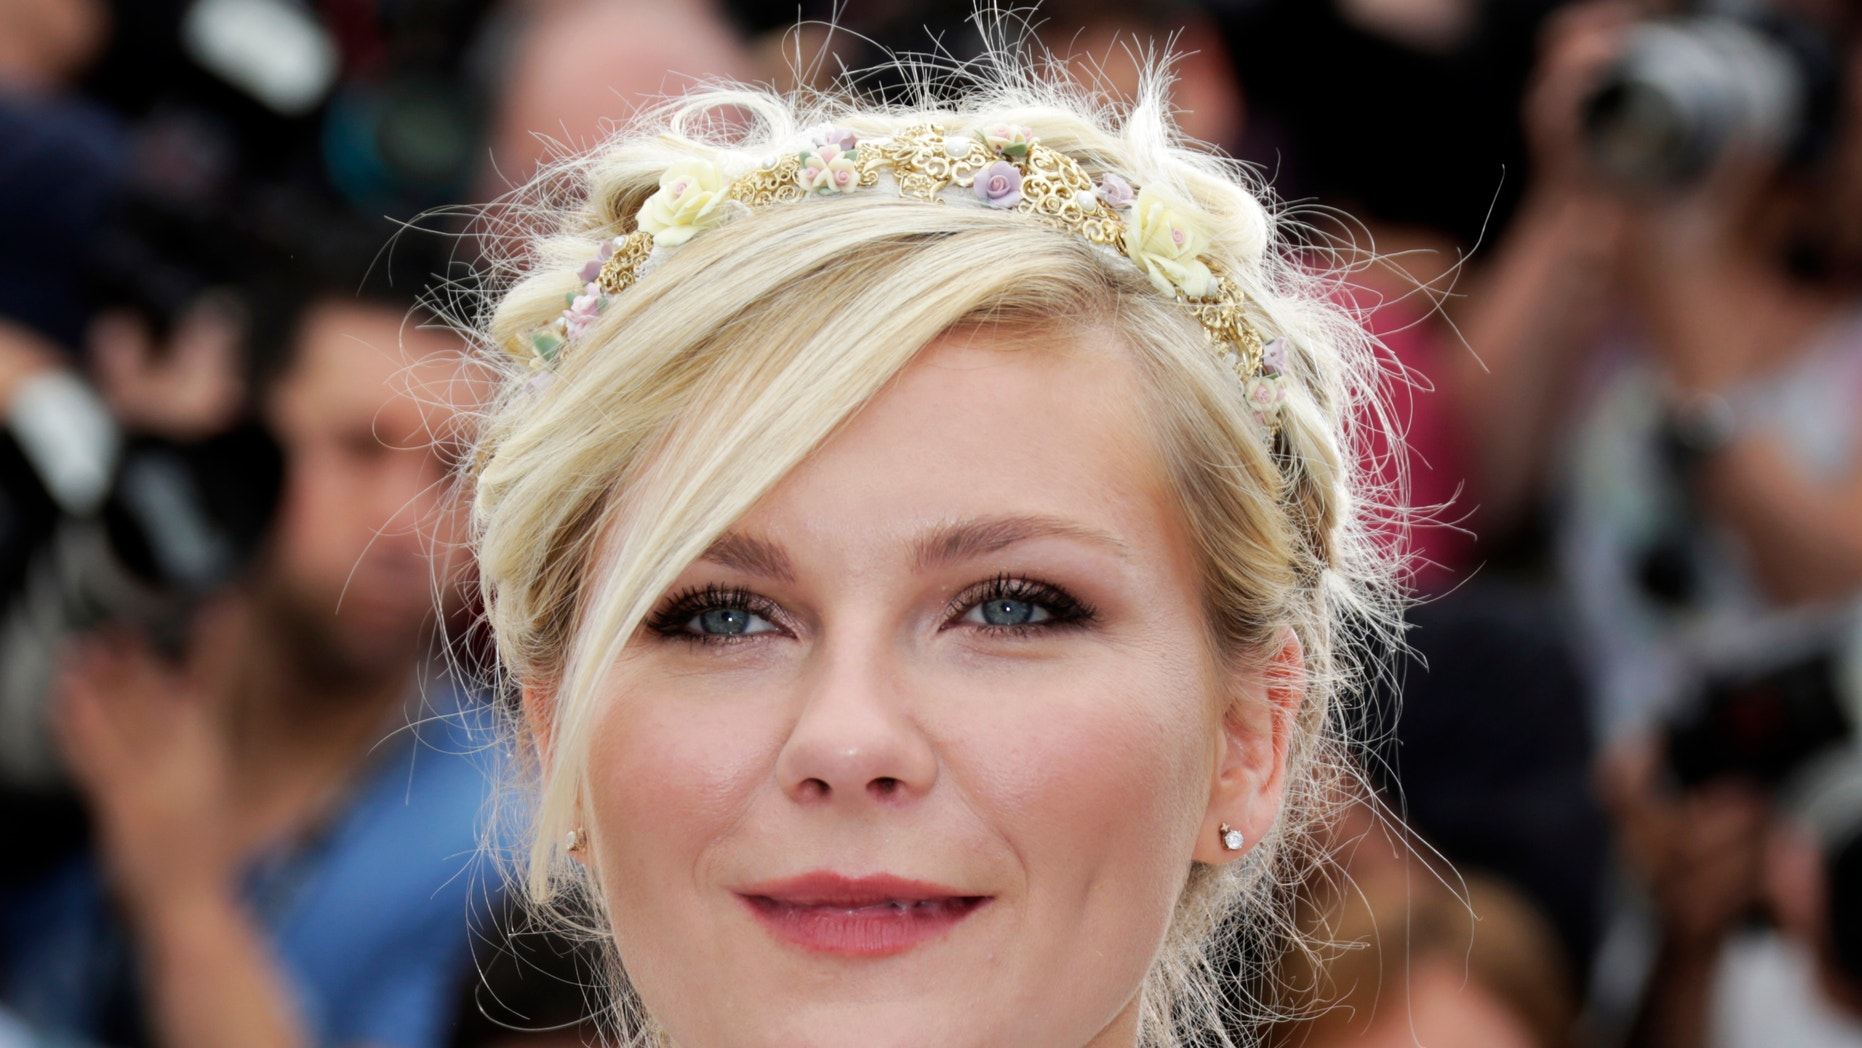 """Cast member Kirsten Dunst poses during a photocall for the film """"On The Road"""", in competition at the 65th Cannes Film Festival, May 23, 2012."""